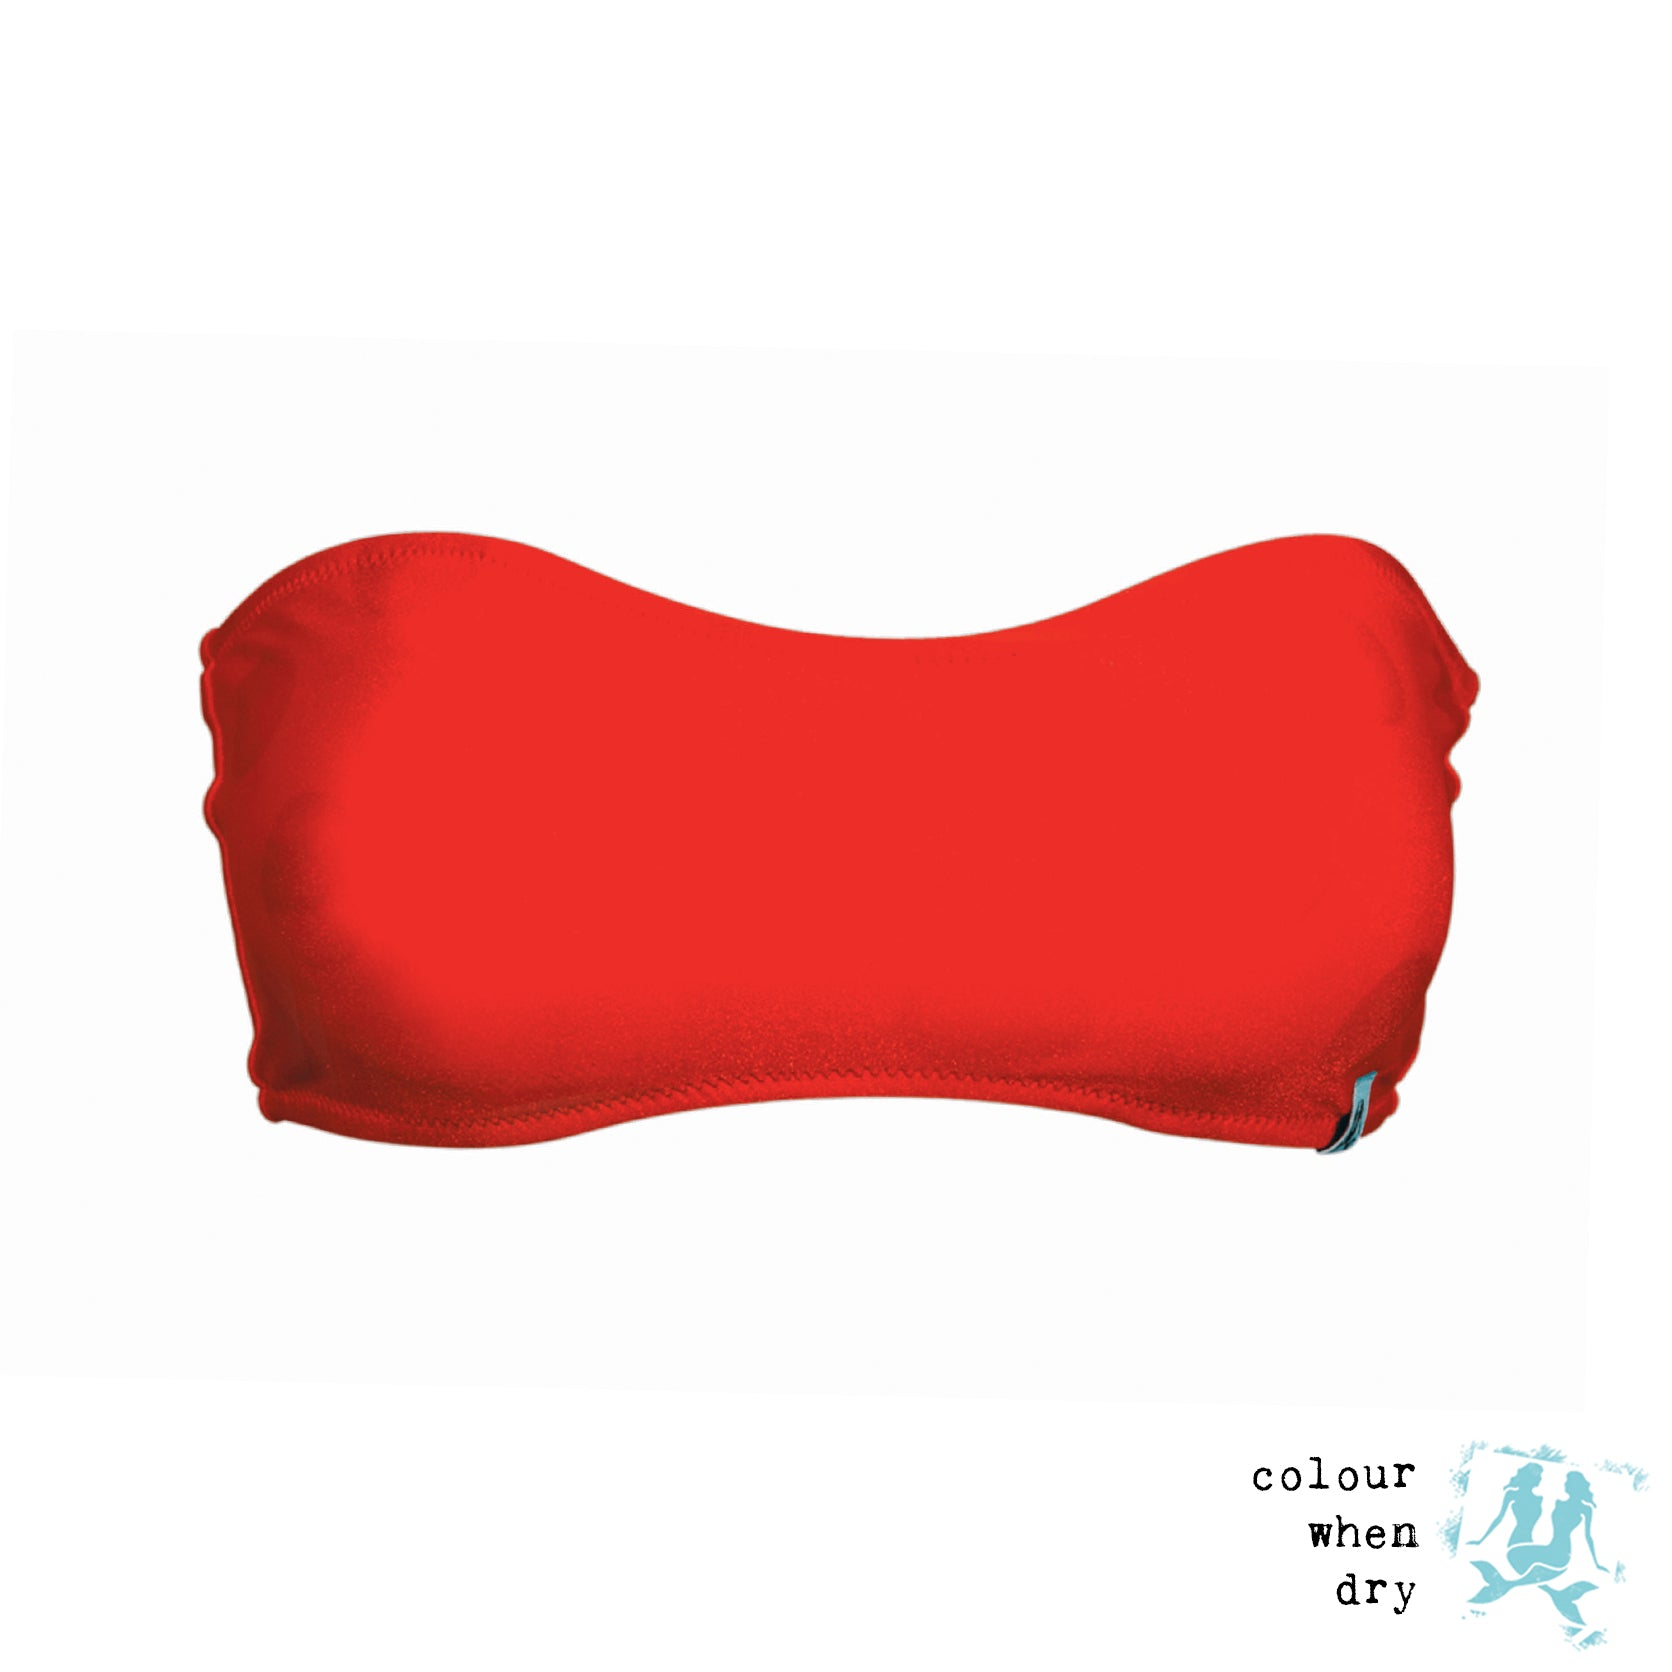 A red strapless bandeau bikini top made by Mermaid In England. All Mermaid In England's swimwear is ethically handmade in Britain. When this red bikini gets wet, a black polka dot pattern appears on the swimwear. We call is colour change swimwear. It's the magic of each design at Mermaid in England.